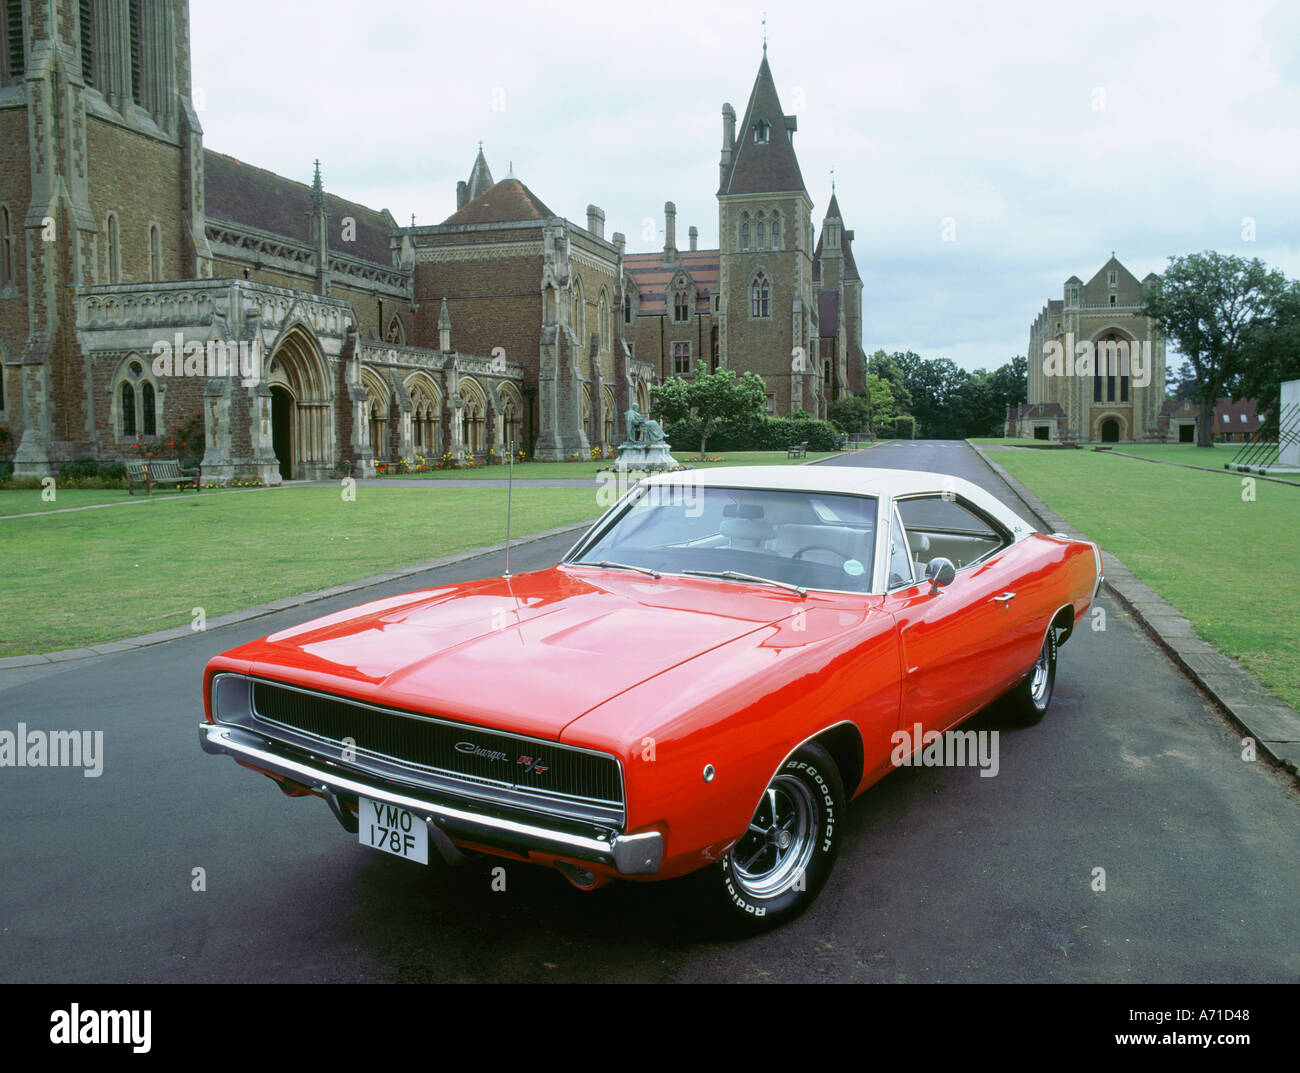 hight resolution of 1968 dodge charger 440 magnum stock image